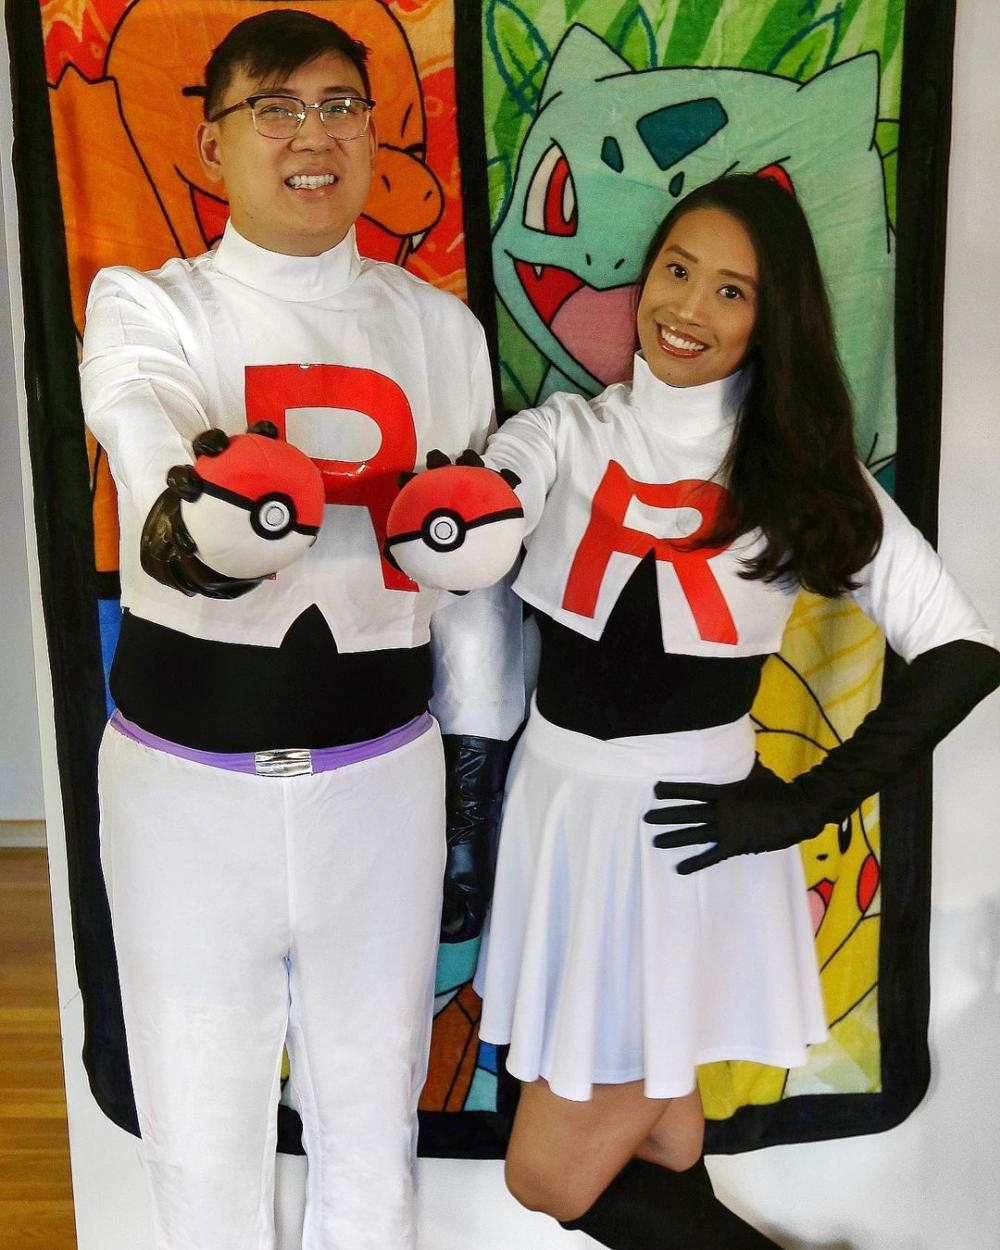 Jessie and james from team rocket funny couple halloween costumes